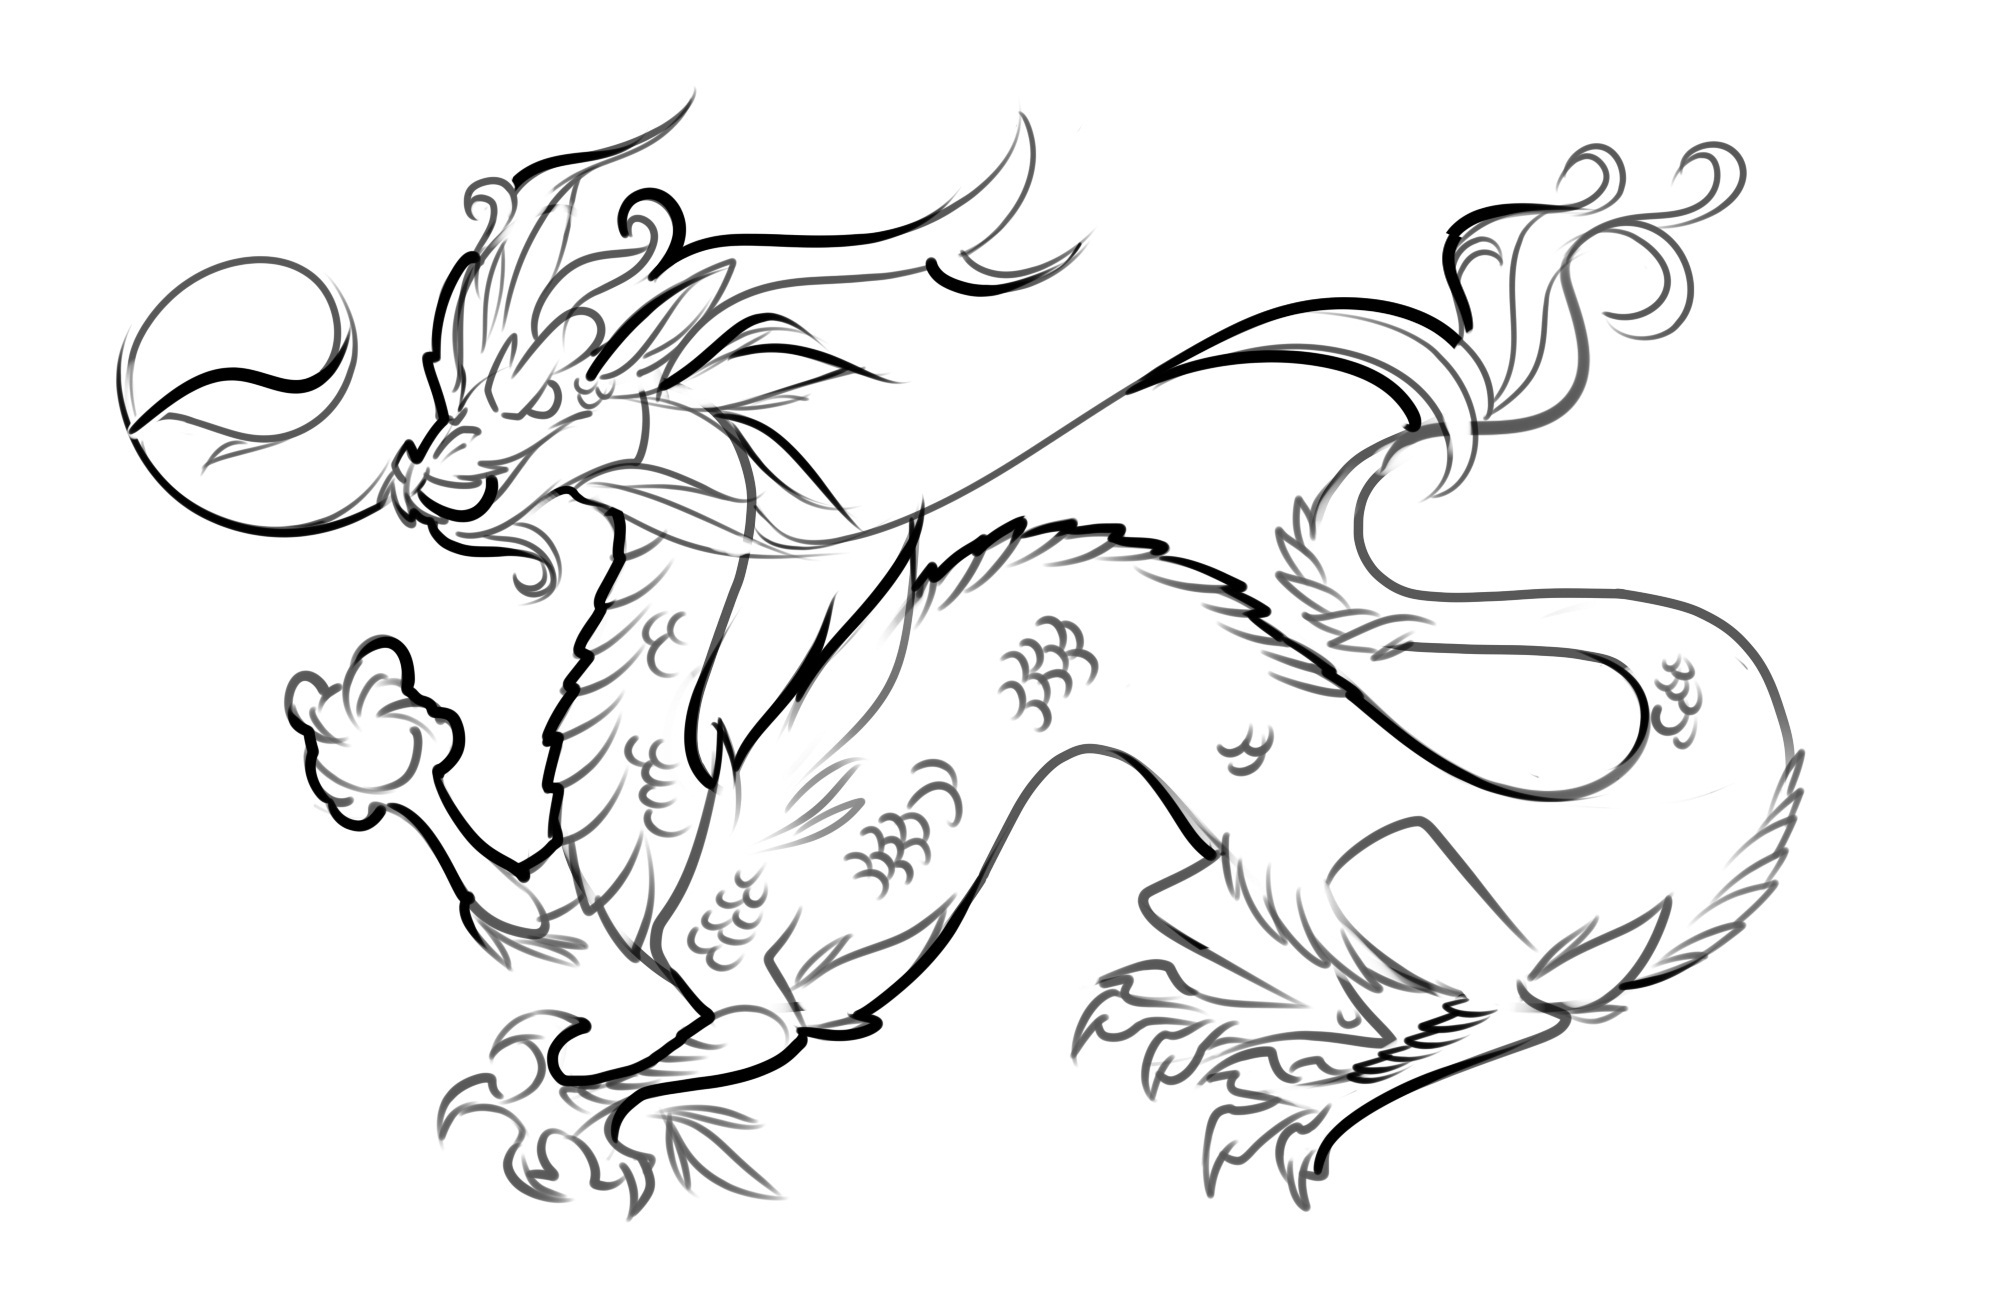 chinesse dragon coloring pages - photo#3